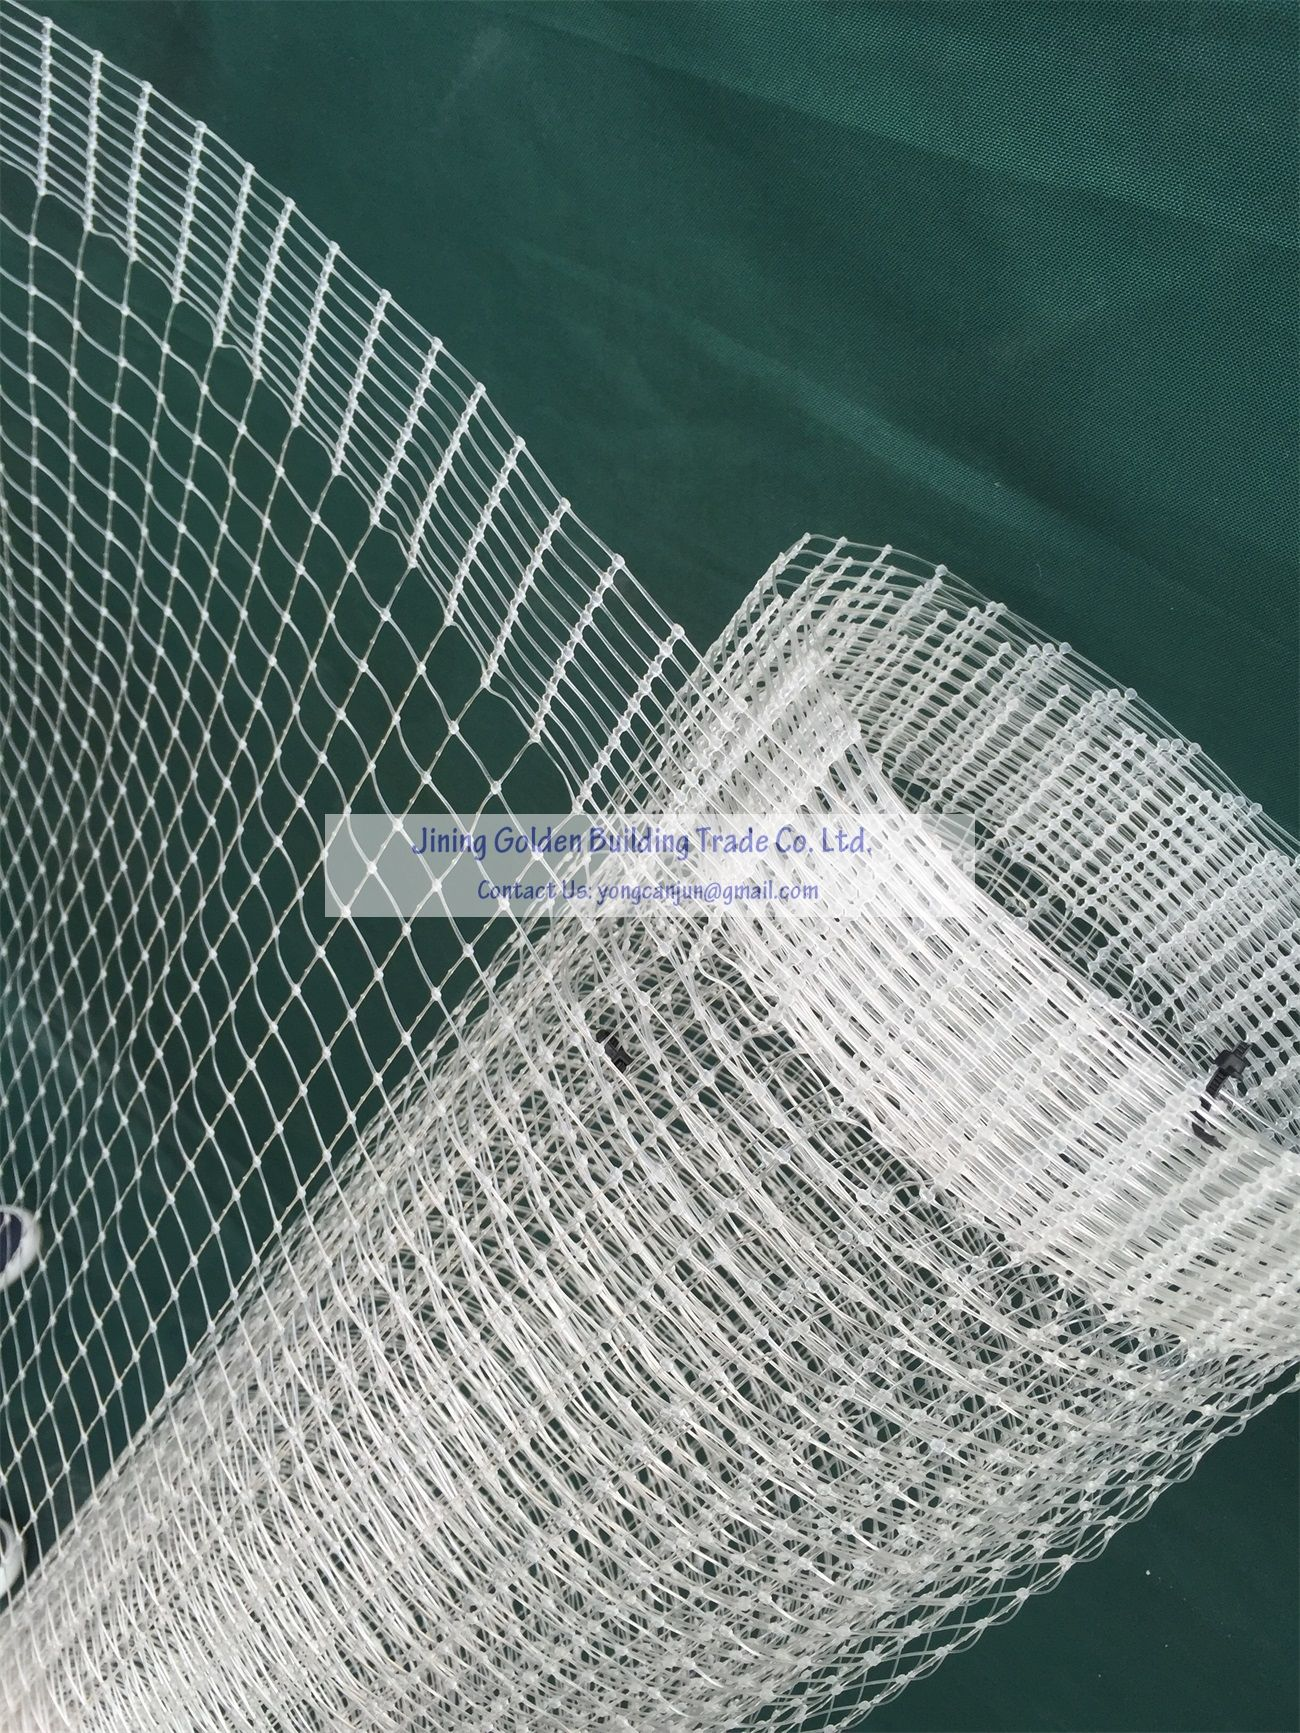 I D Like To Introduce Our Multi Purpose Plastic Netting For You Please Do Not Hesitate To Contact Me If You Hav Bird Netting Building Trade Bottle Cap Crafts